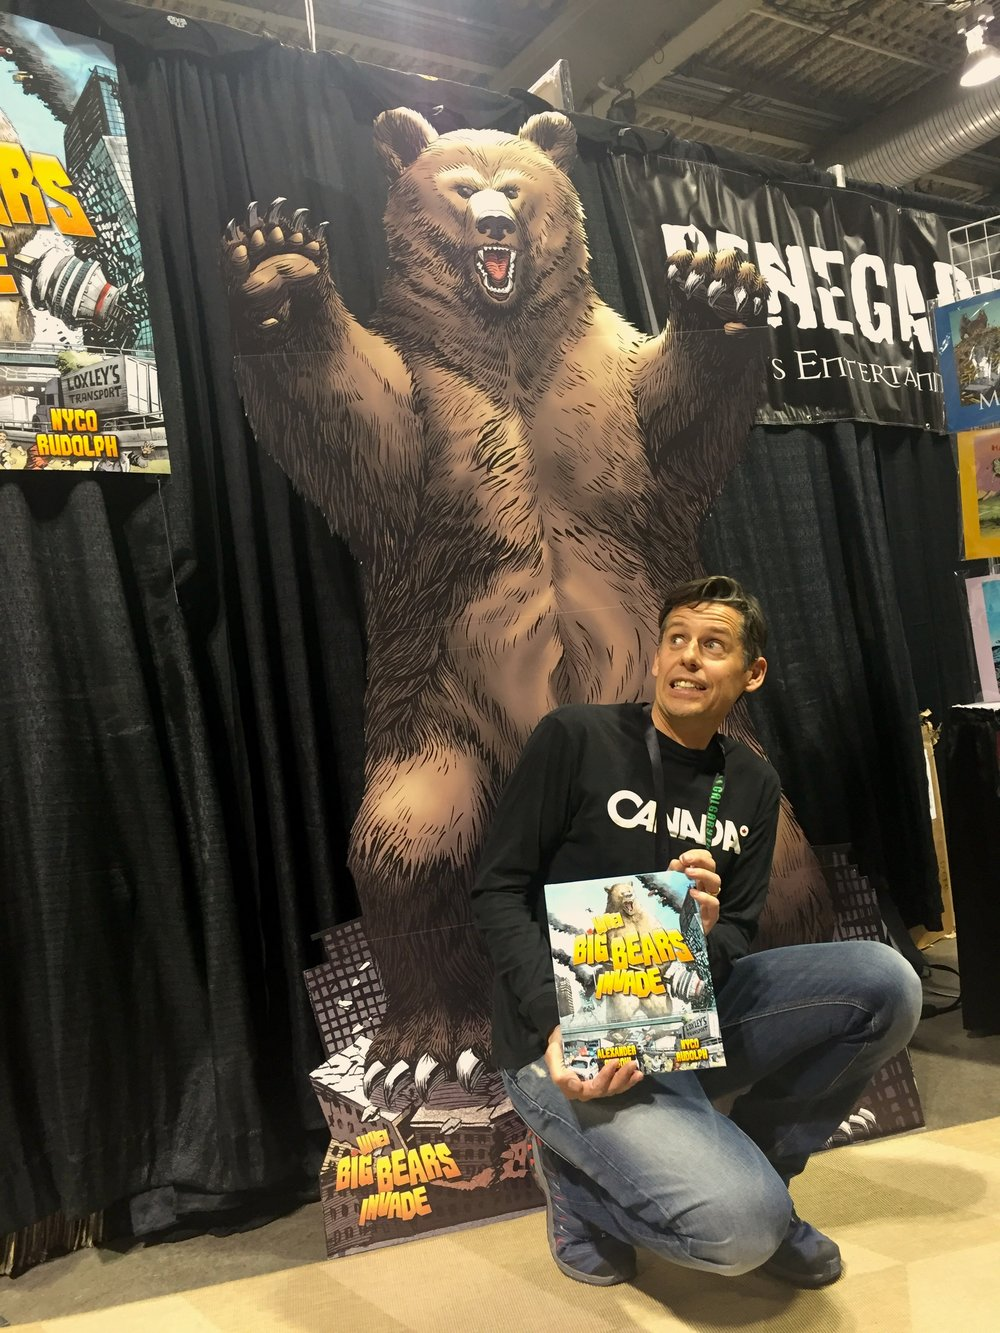 Writer Alexander Finbow - When Big Bears Invade. Calgary Expo 2017 (Photo credit: Chris Doucher/GeekNerdNet.com)